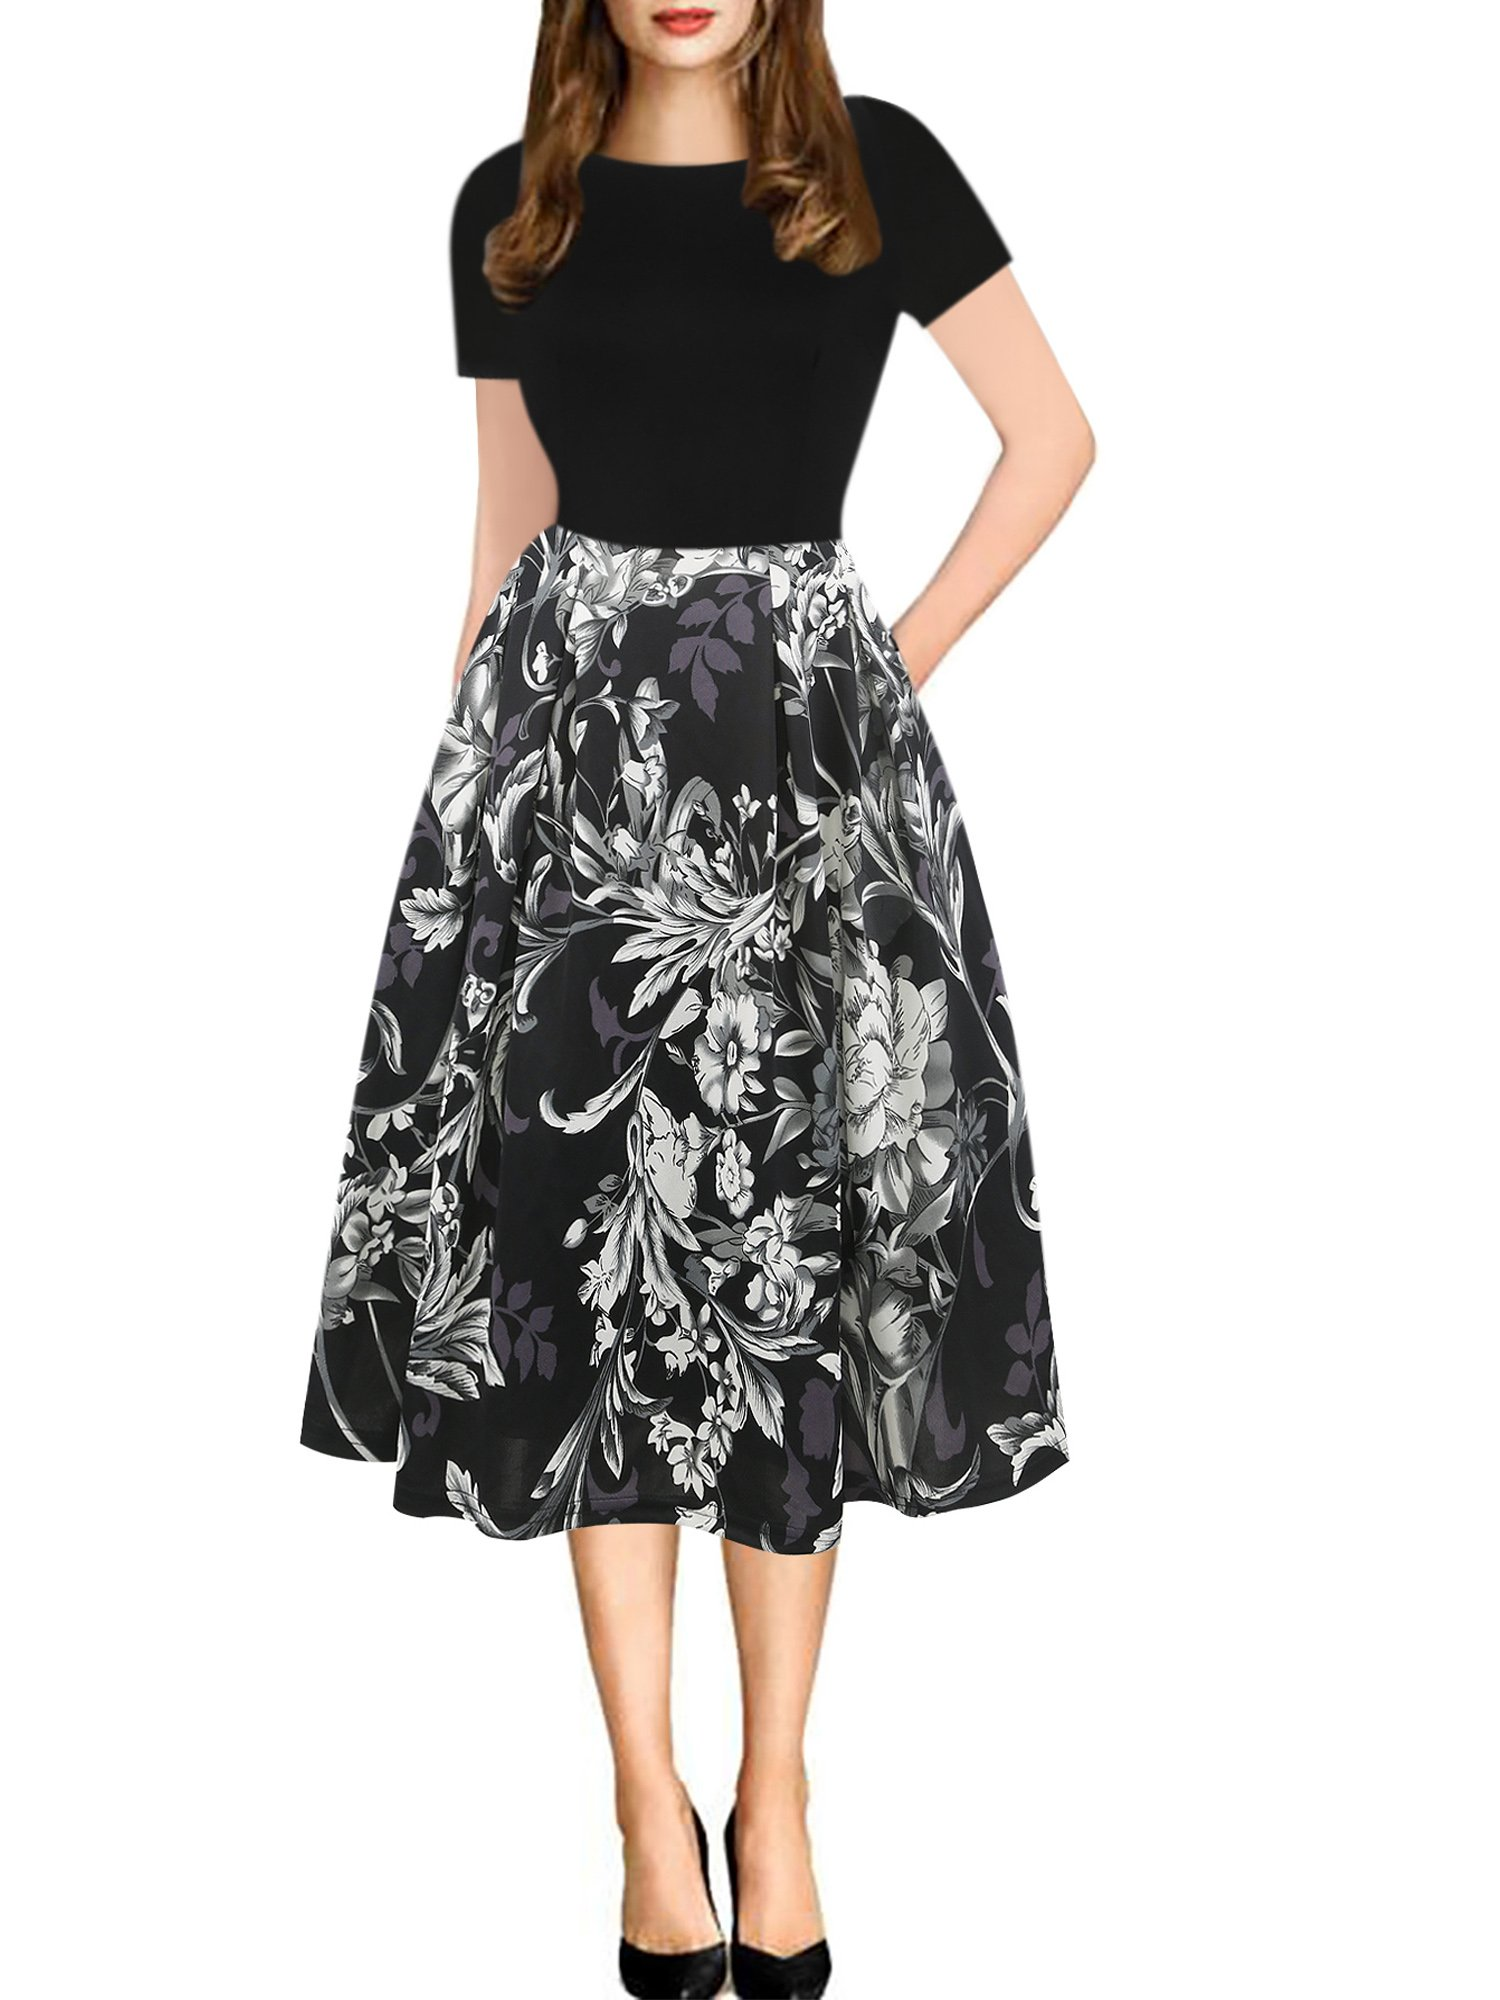 oxiuly Women's Vintage Patchwork Pockets Wedding Evening Swing Dress Casual Party Work Summer Dress OX165 (XL, Black Gray)